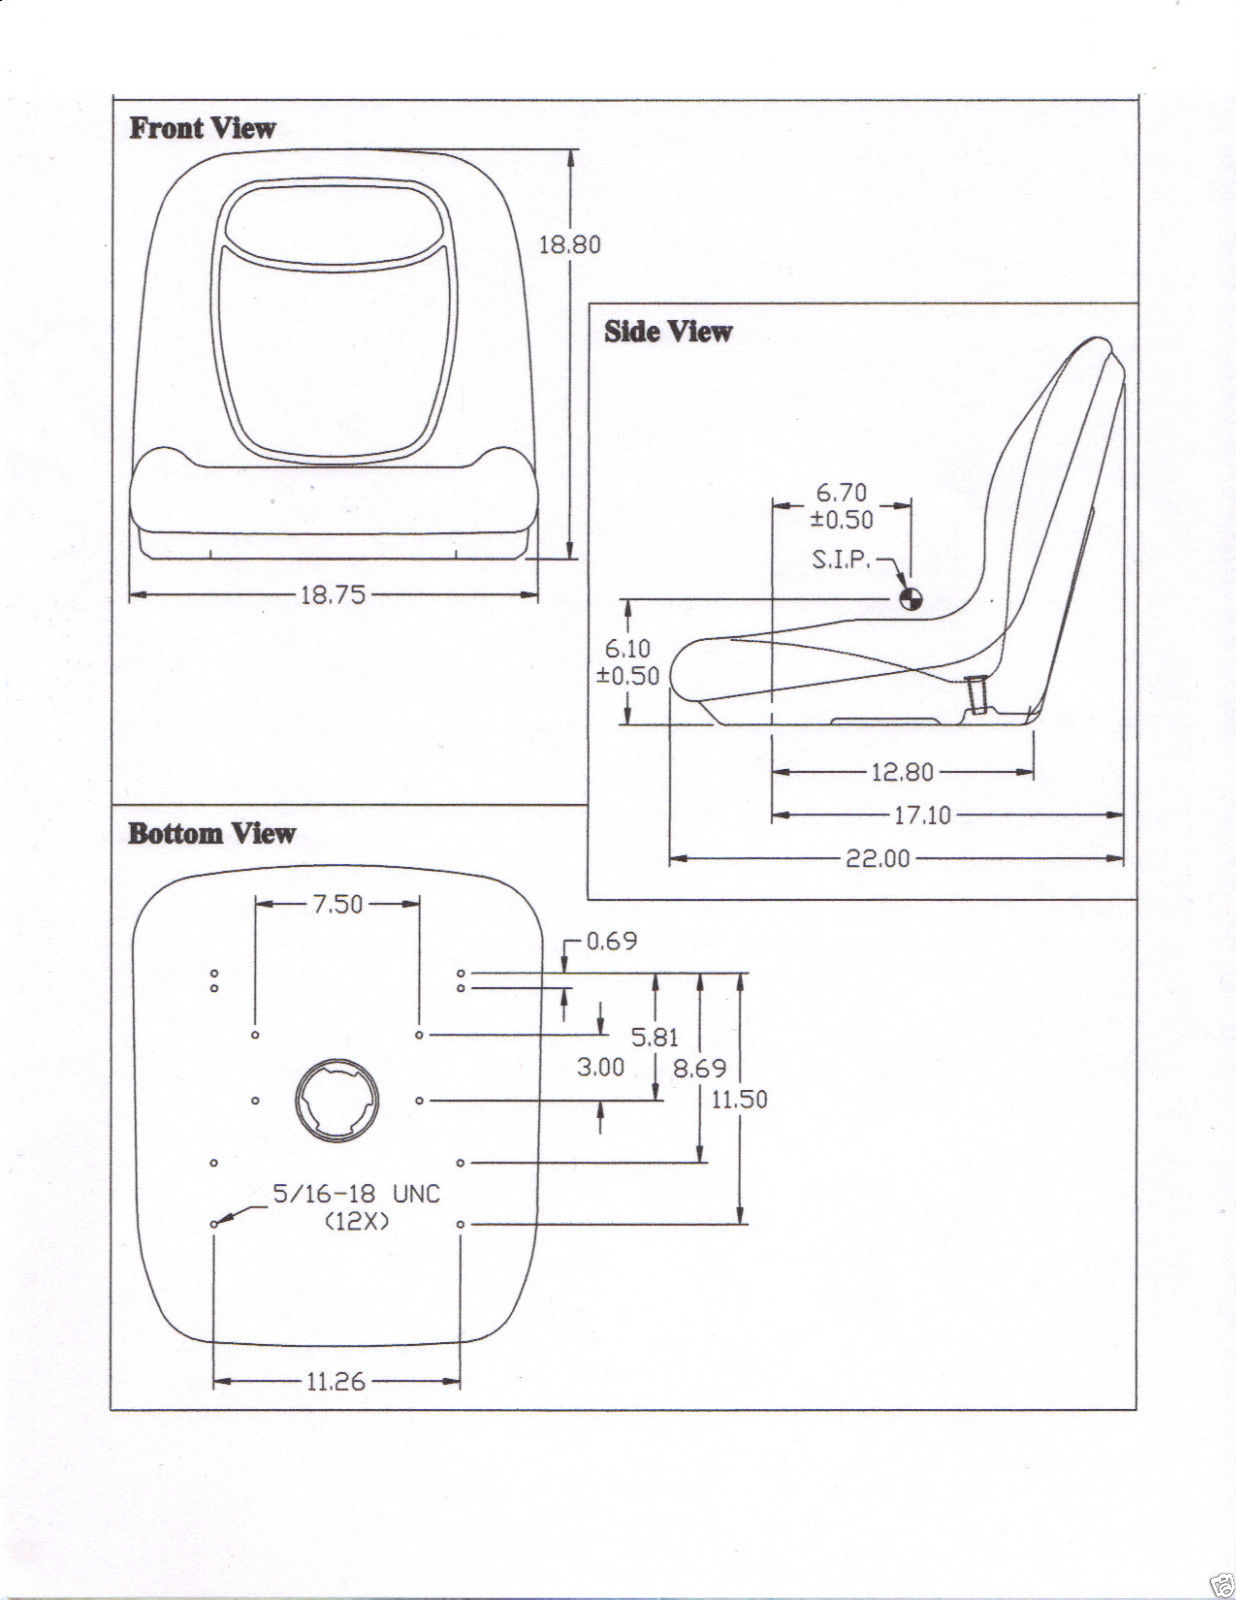 John Deere 855 Tractor Wiring Diagram Trusted For 245 Free Download 4500 Accessories